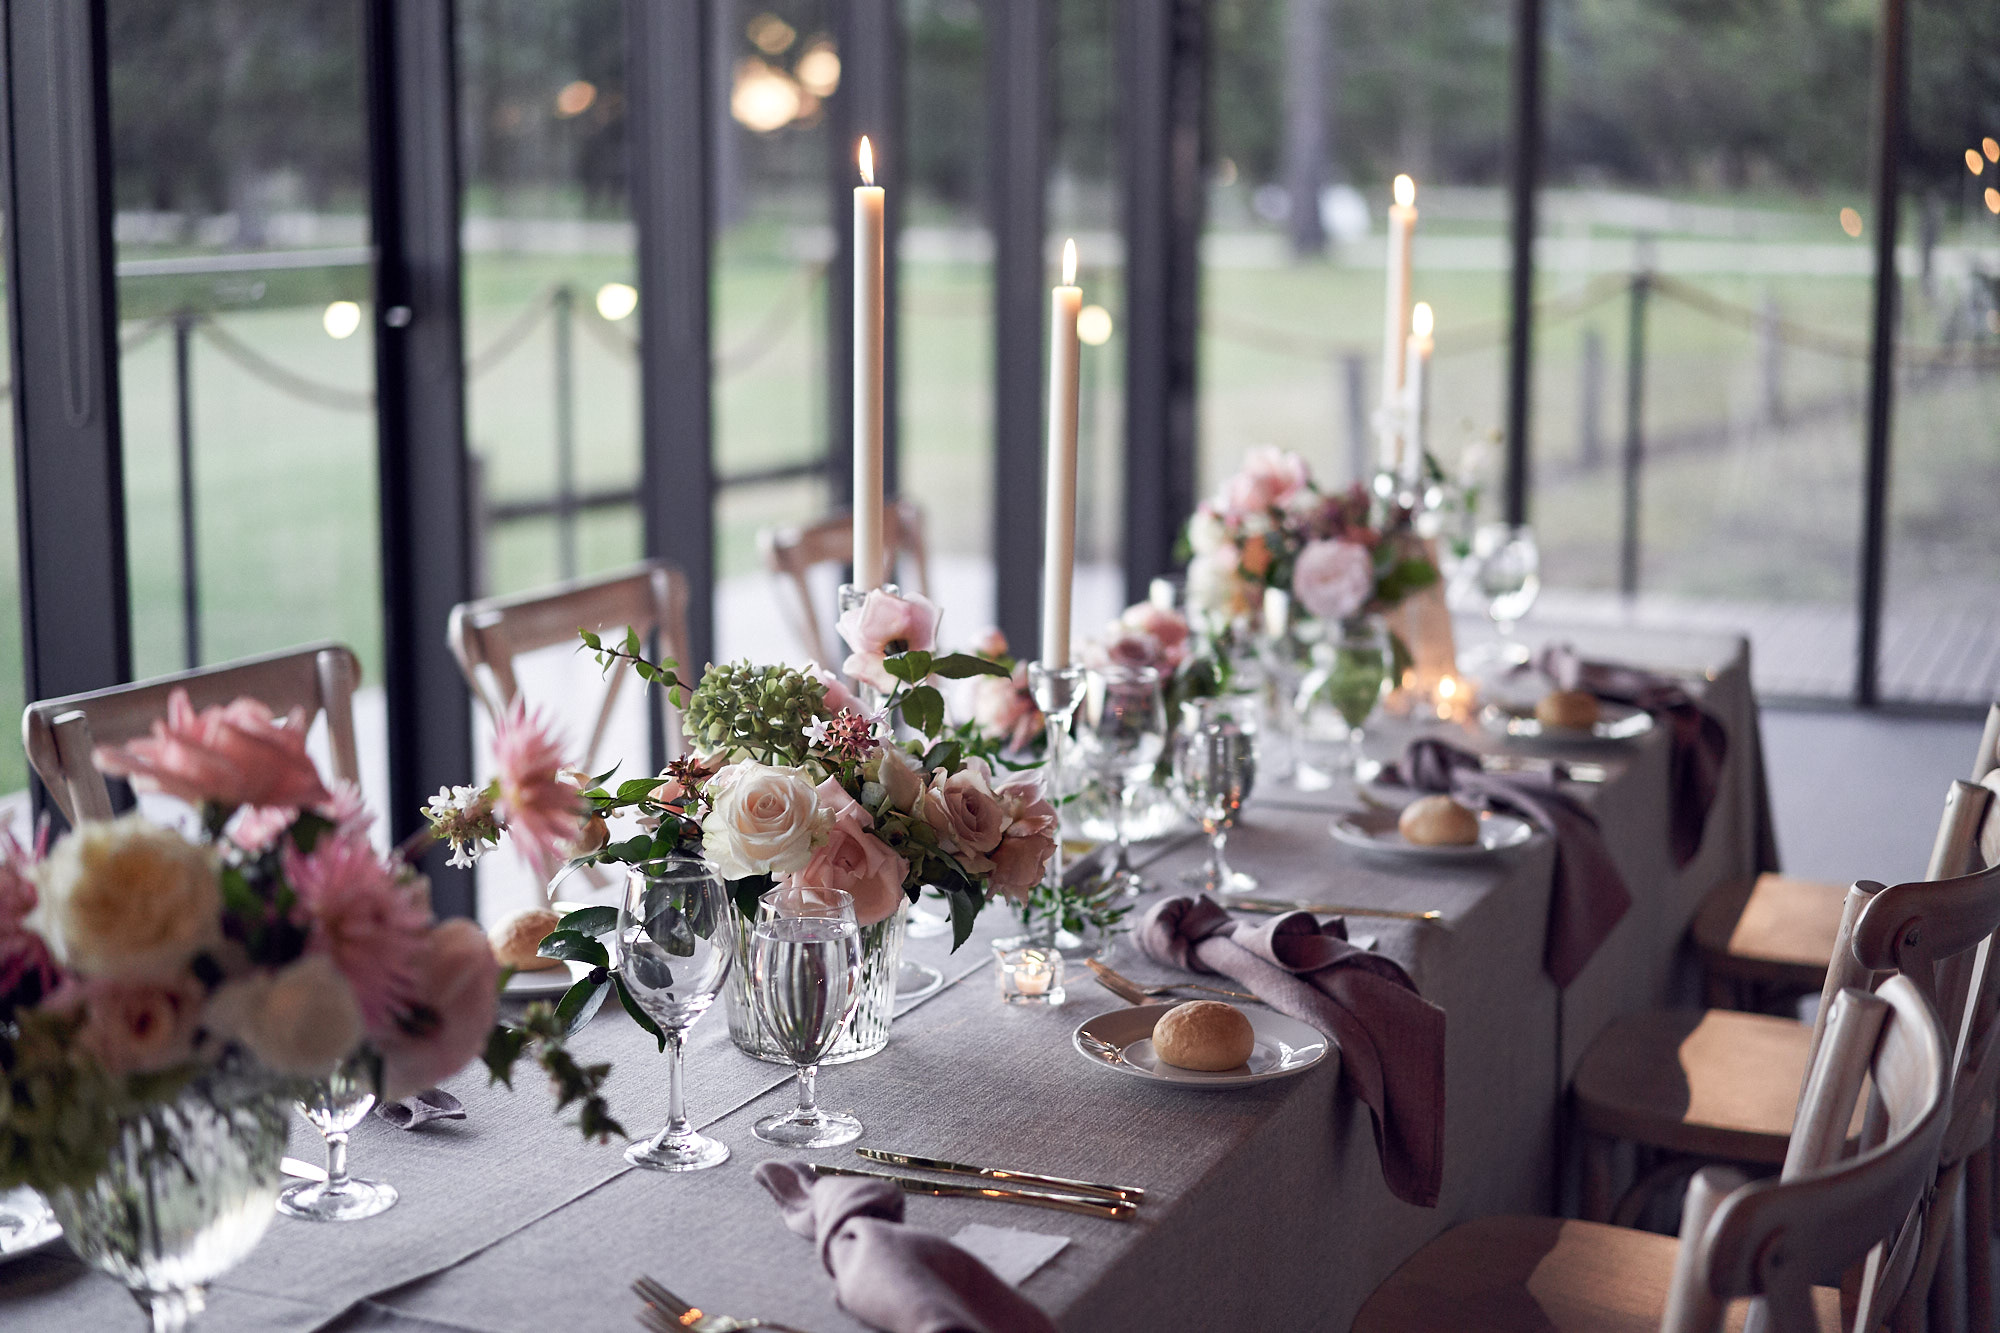 Autumn styling by Weddings of desire at werribee mansion wedding by lost in love photography